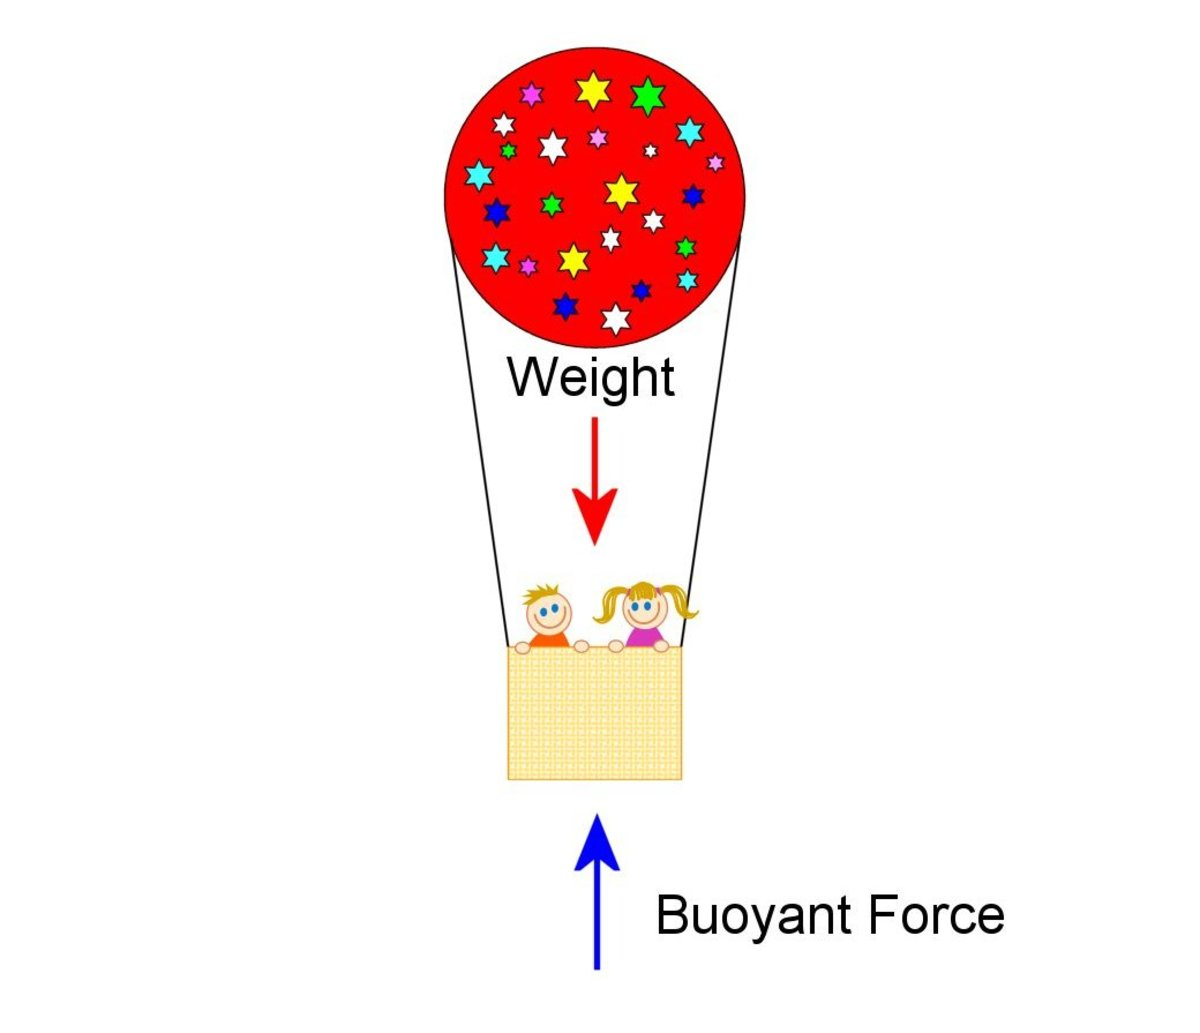 Hot air and helium balloons rely on buoyancy to give them lift and keep them aloft.